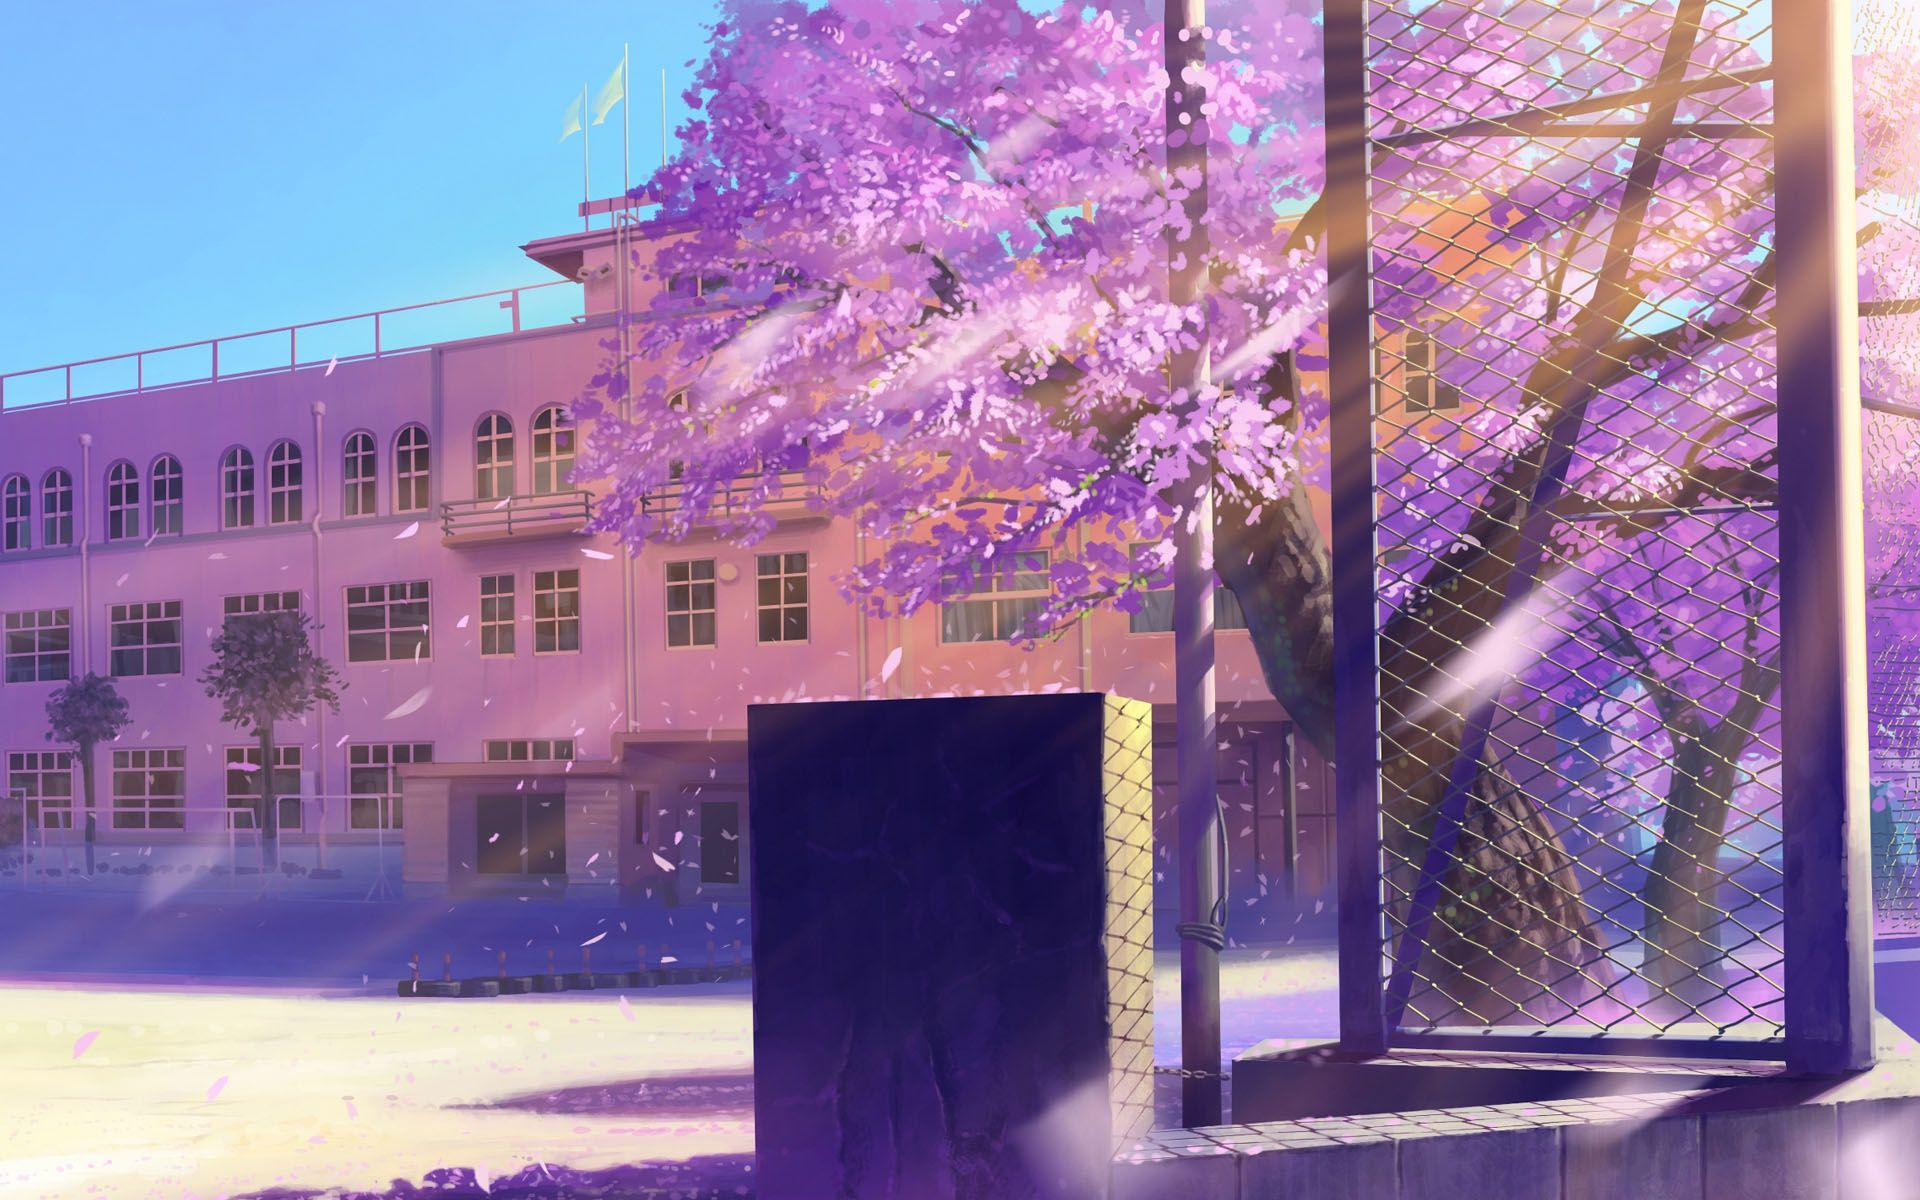 Anime School Architecture Hd Wallpaper Papel De Parede De Fundo